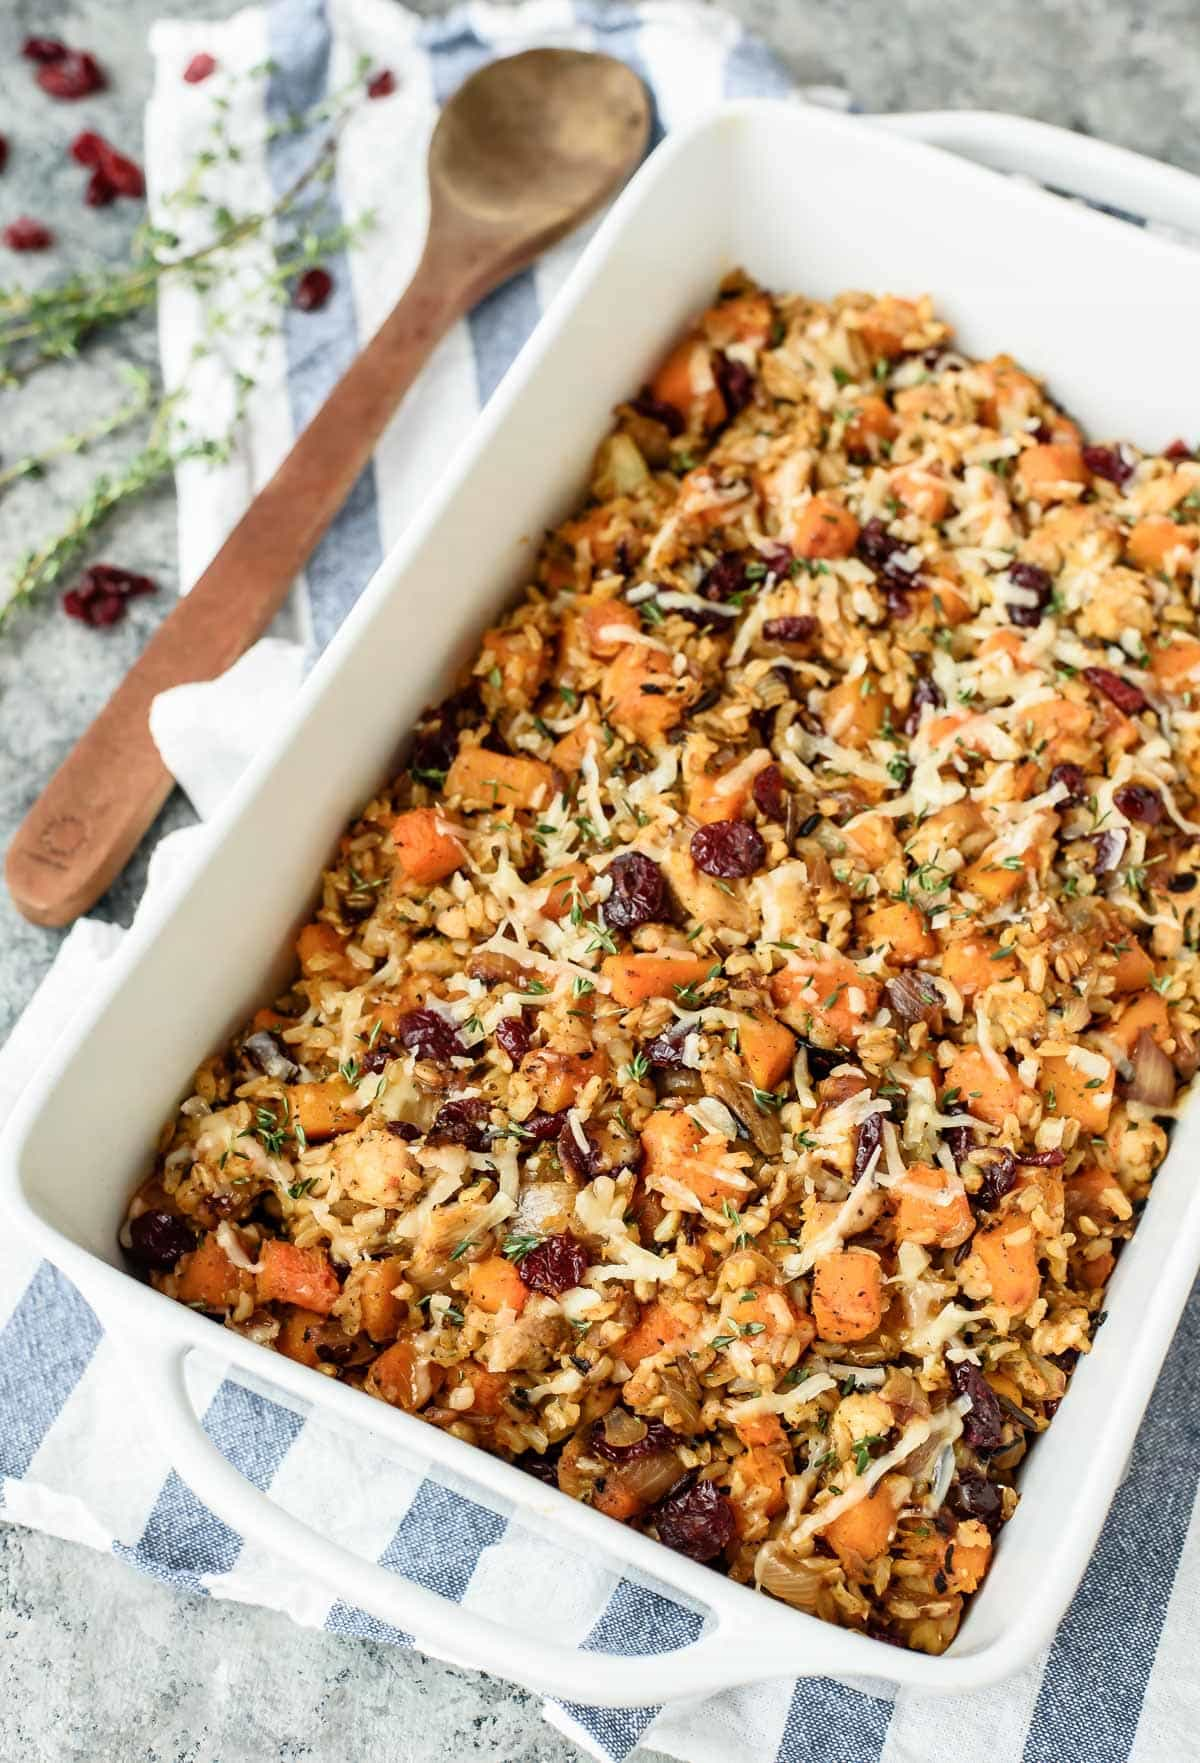 Chicken and Wild Rice Casserole with Butternut Squash. Great freezer meal to bring to friends and a healthy dinner too! Gluten free.